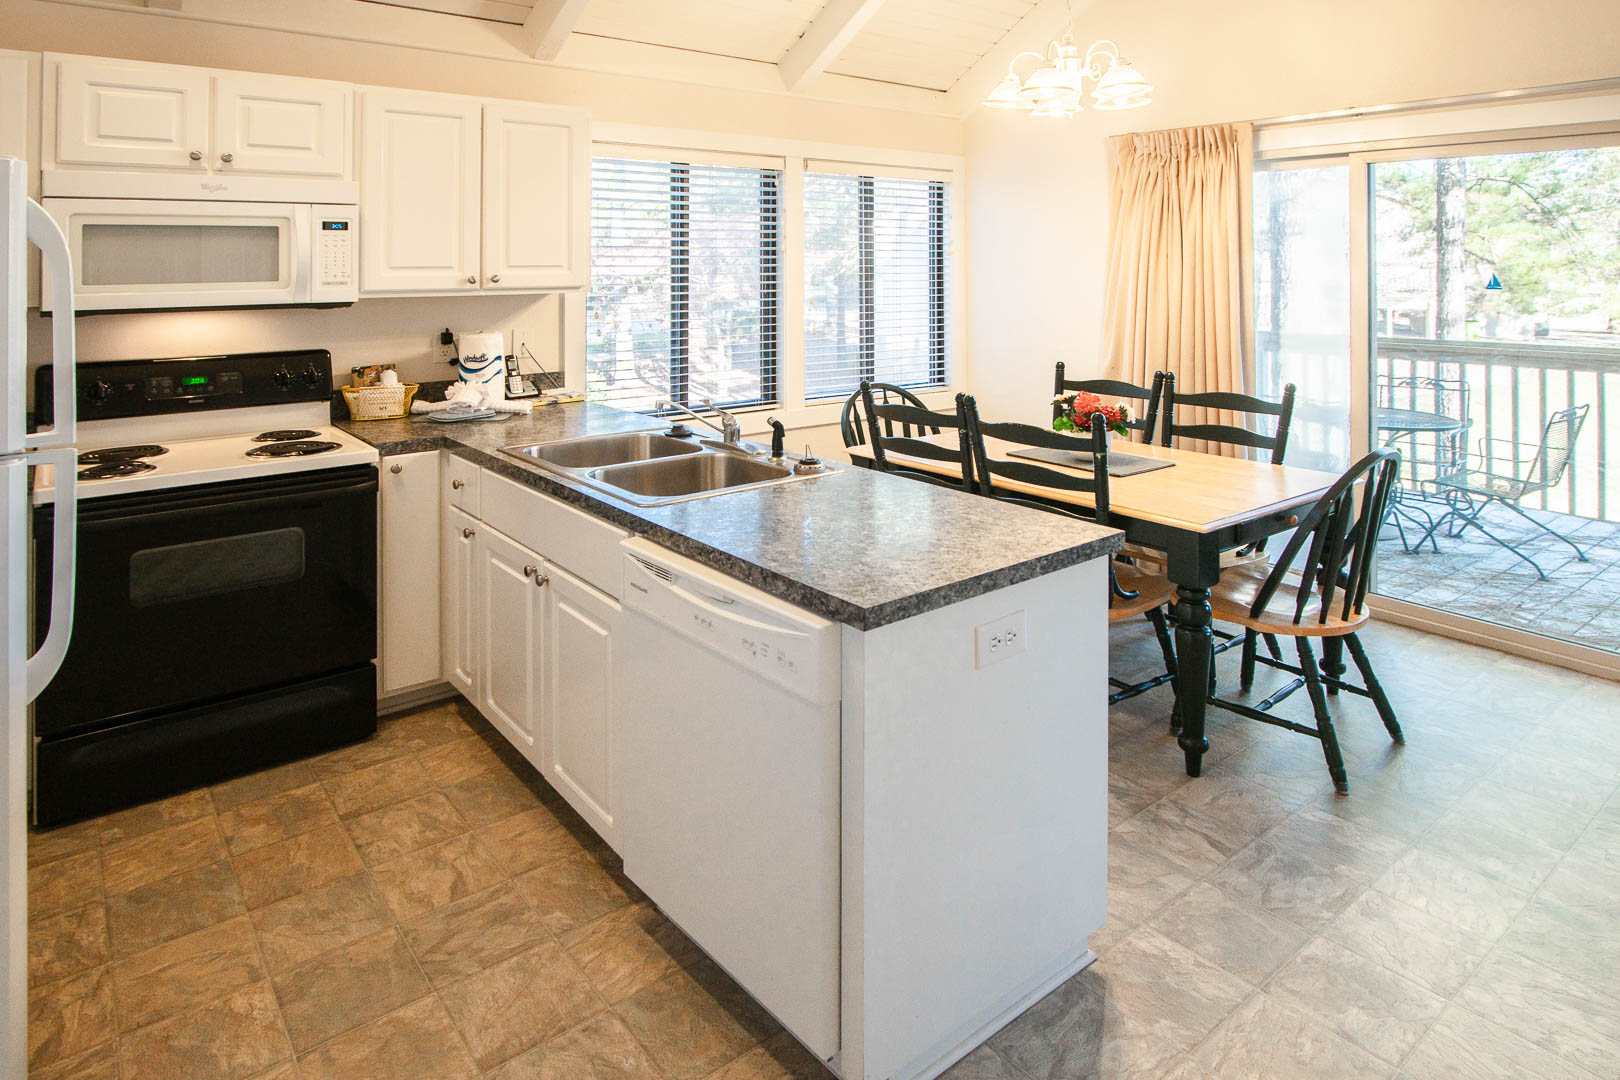 A fully equipped kitchen at VRI's Waterwood Townhomes in New Bern, North Carolina.